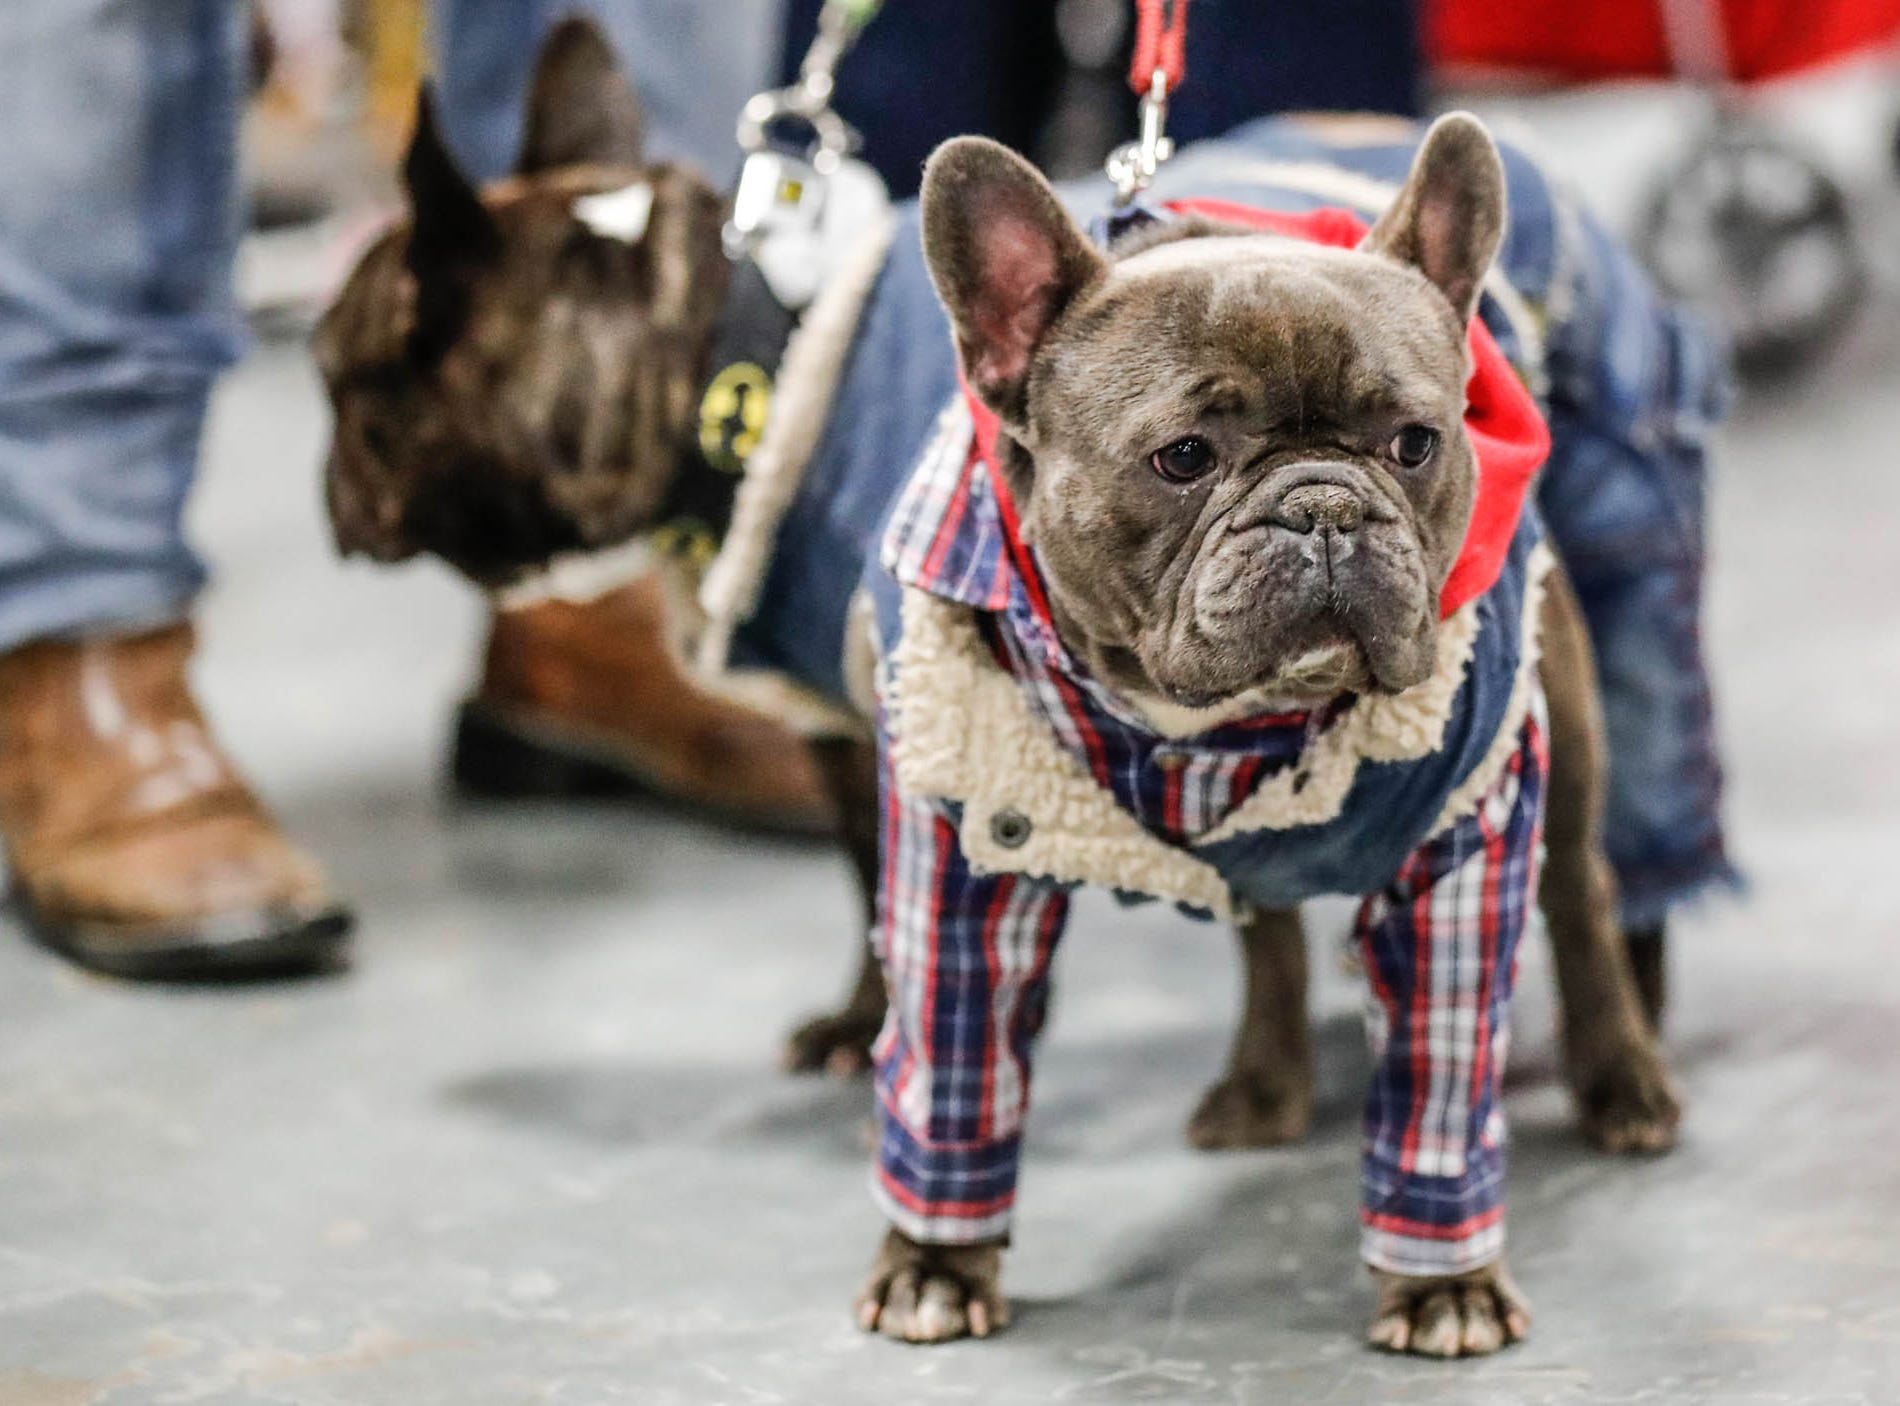 A dog belonging to Andy Ronan struts it's stuff in a denim outfit at the Great Indy Pet Expo, held at the Indiana State Fairgrounds on Sat. Nov. 10, 2018.